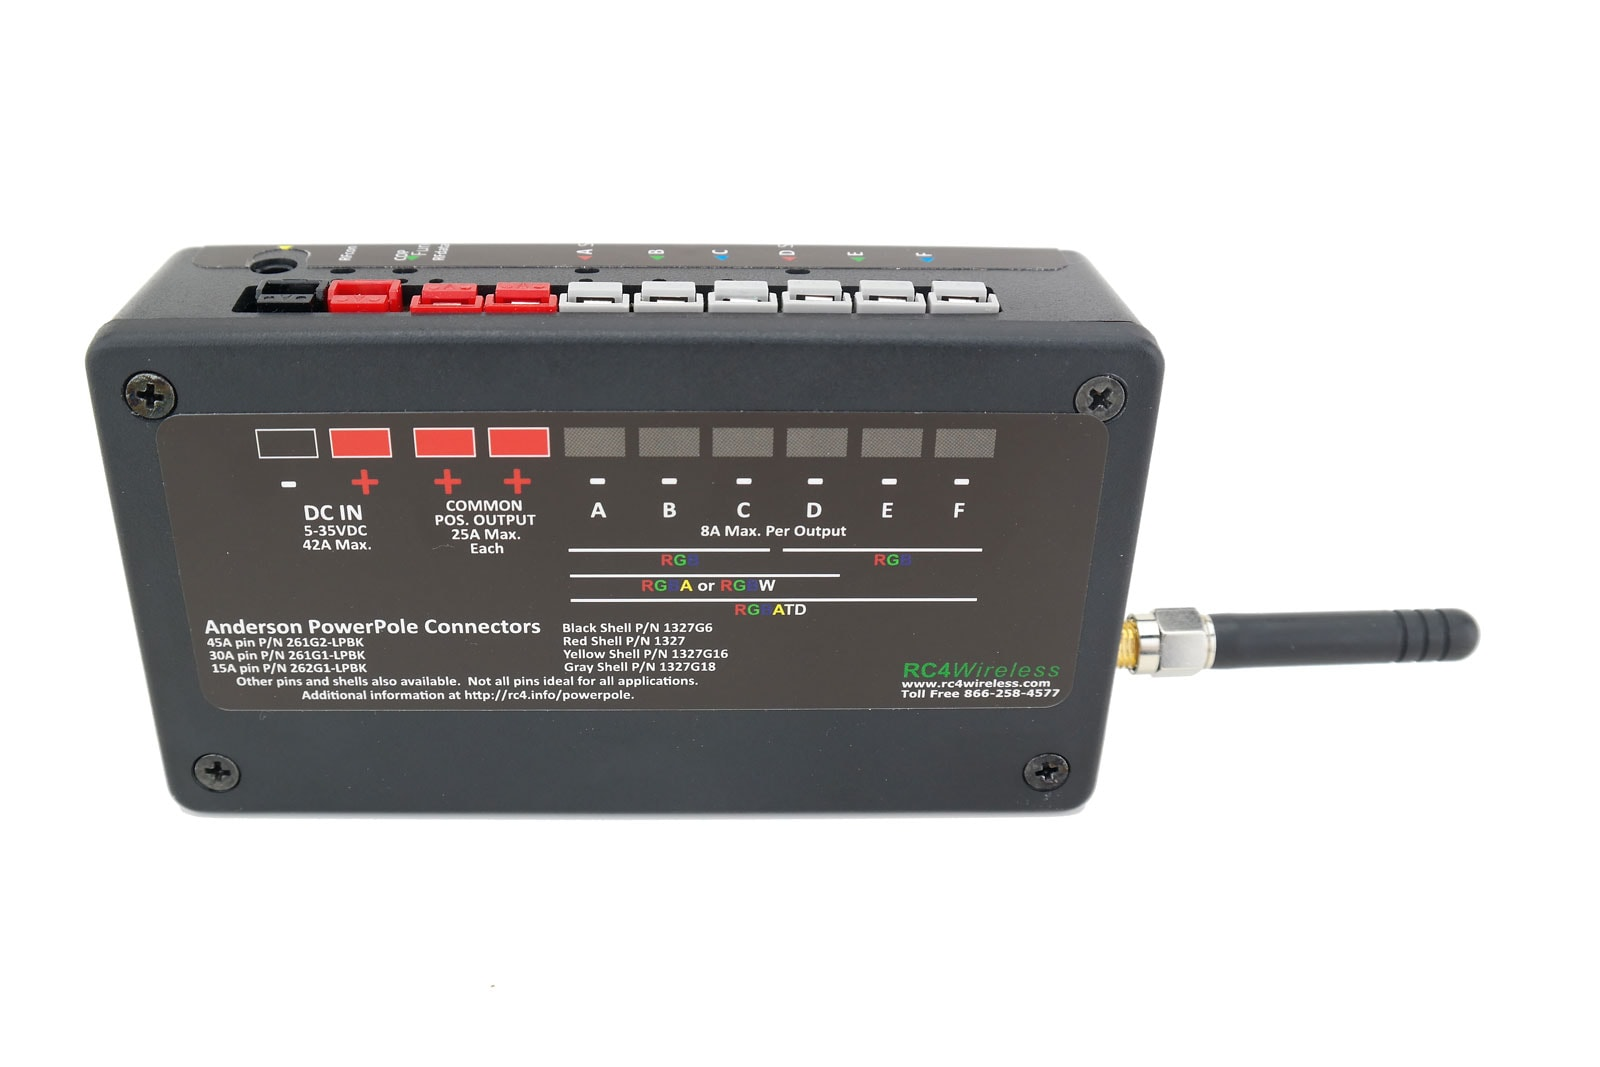 RC4 Wireless: 6-channel, 500W - wireless DMX receiver dimmer